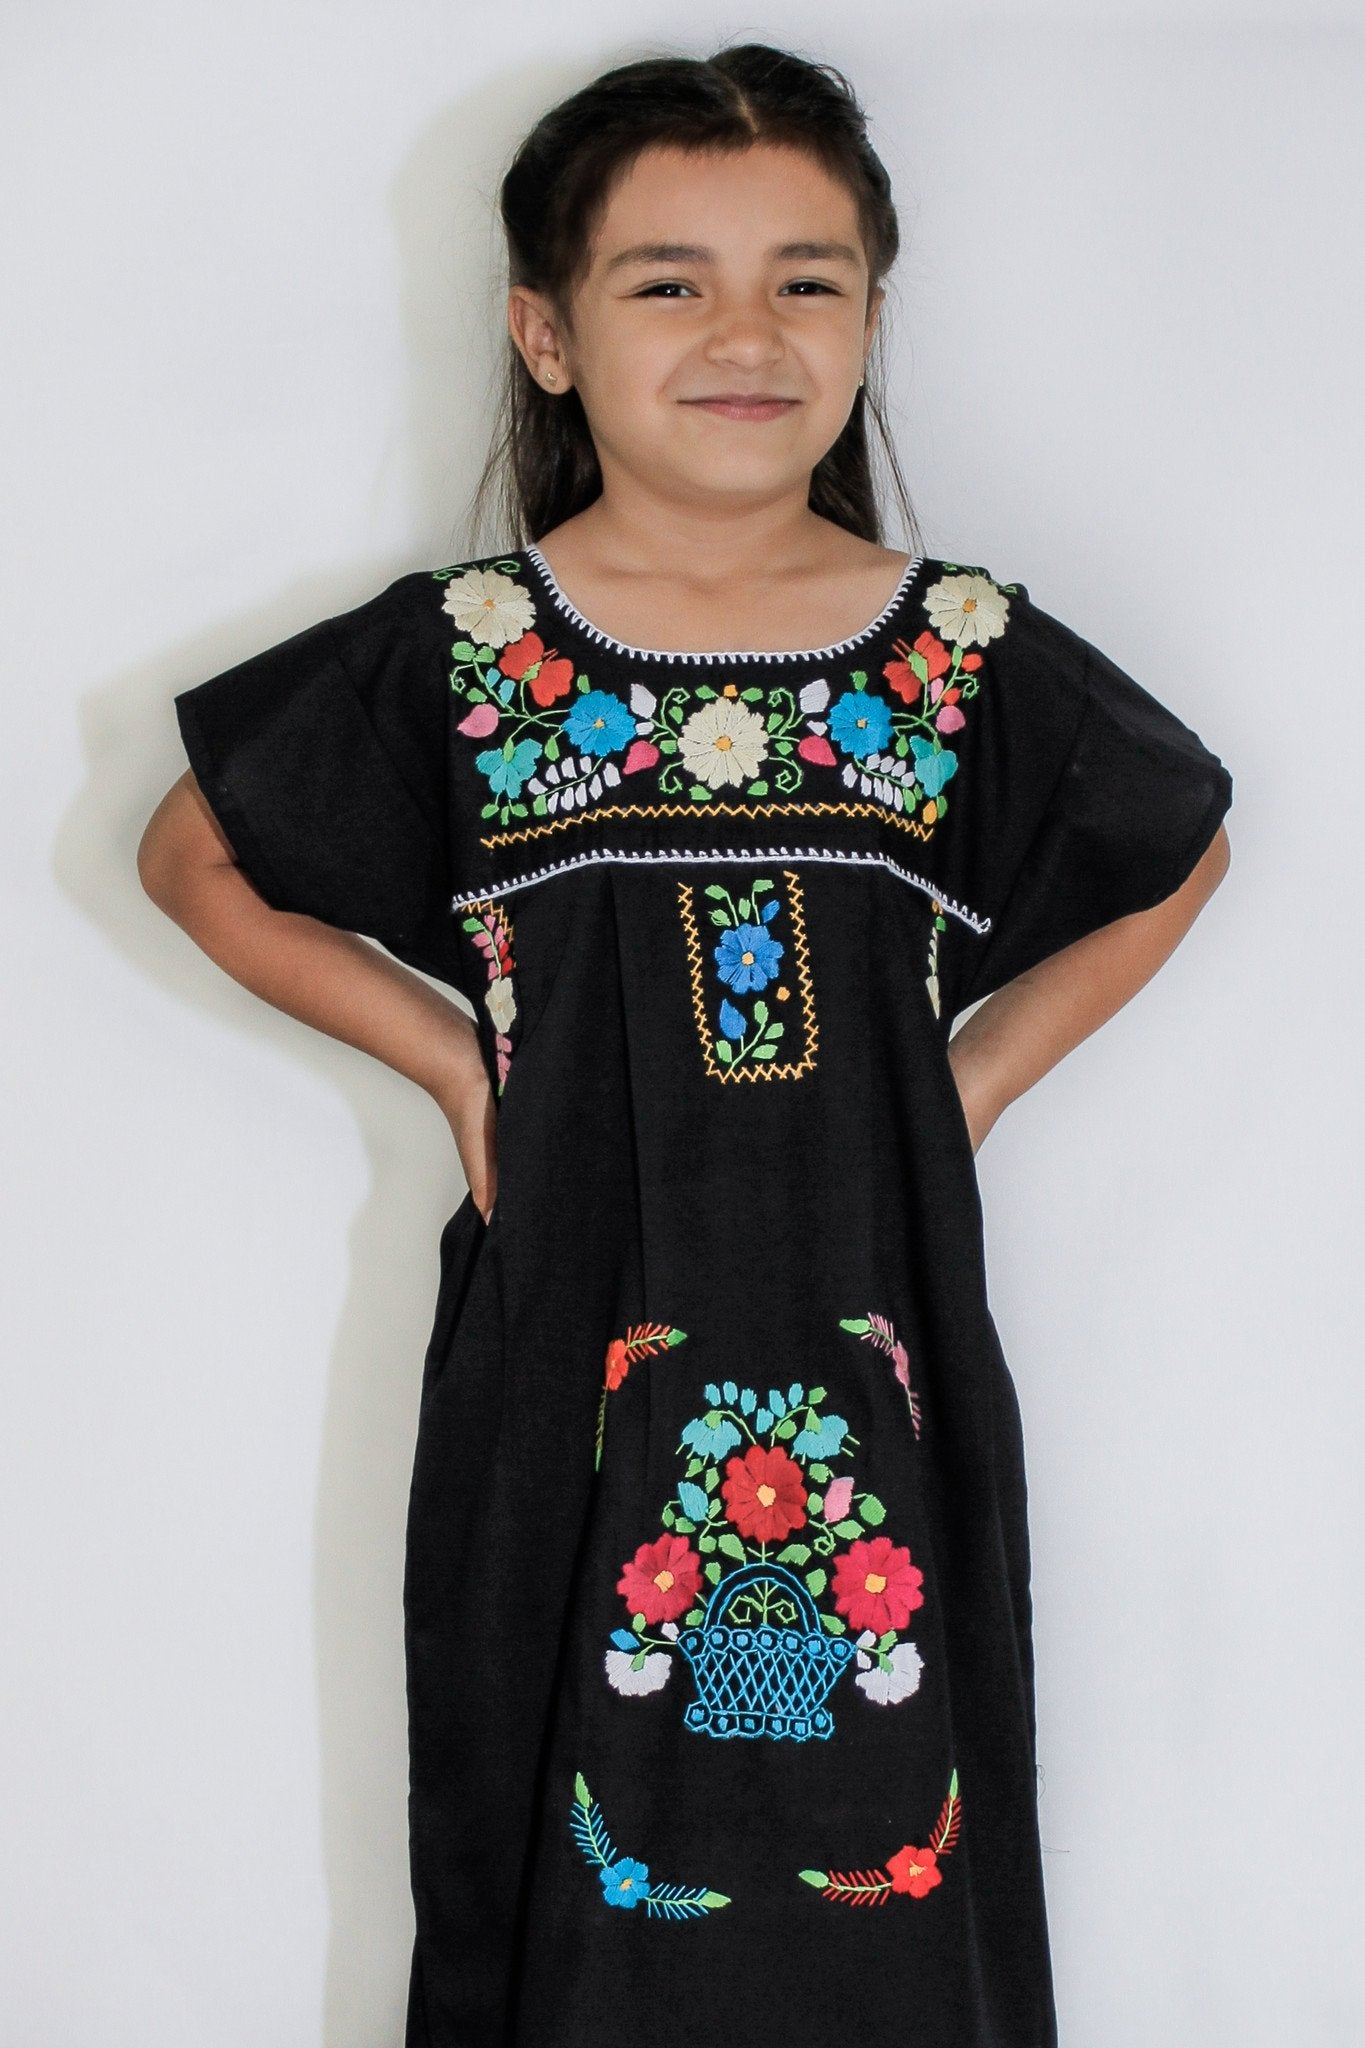 a6b48ac80e Mexican Little Puebla Peasant Dress Various Colors A. Black Traditional  Mexican Tunic Peasant Dress With Colorful Embroidery. Mexican Embroidered  Dresses